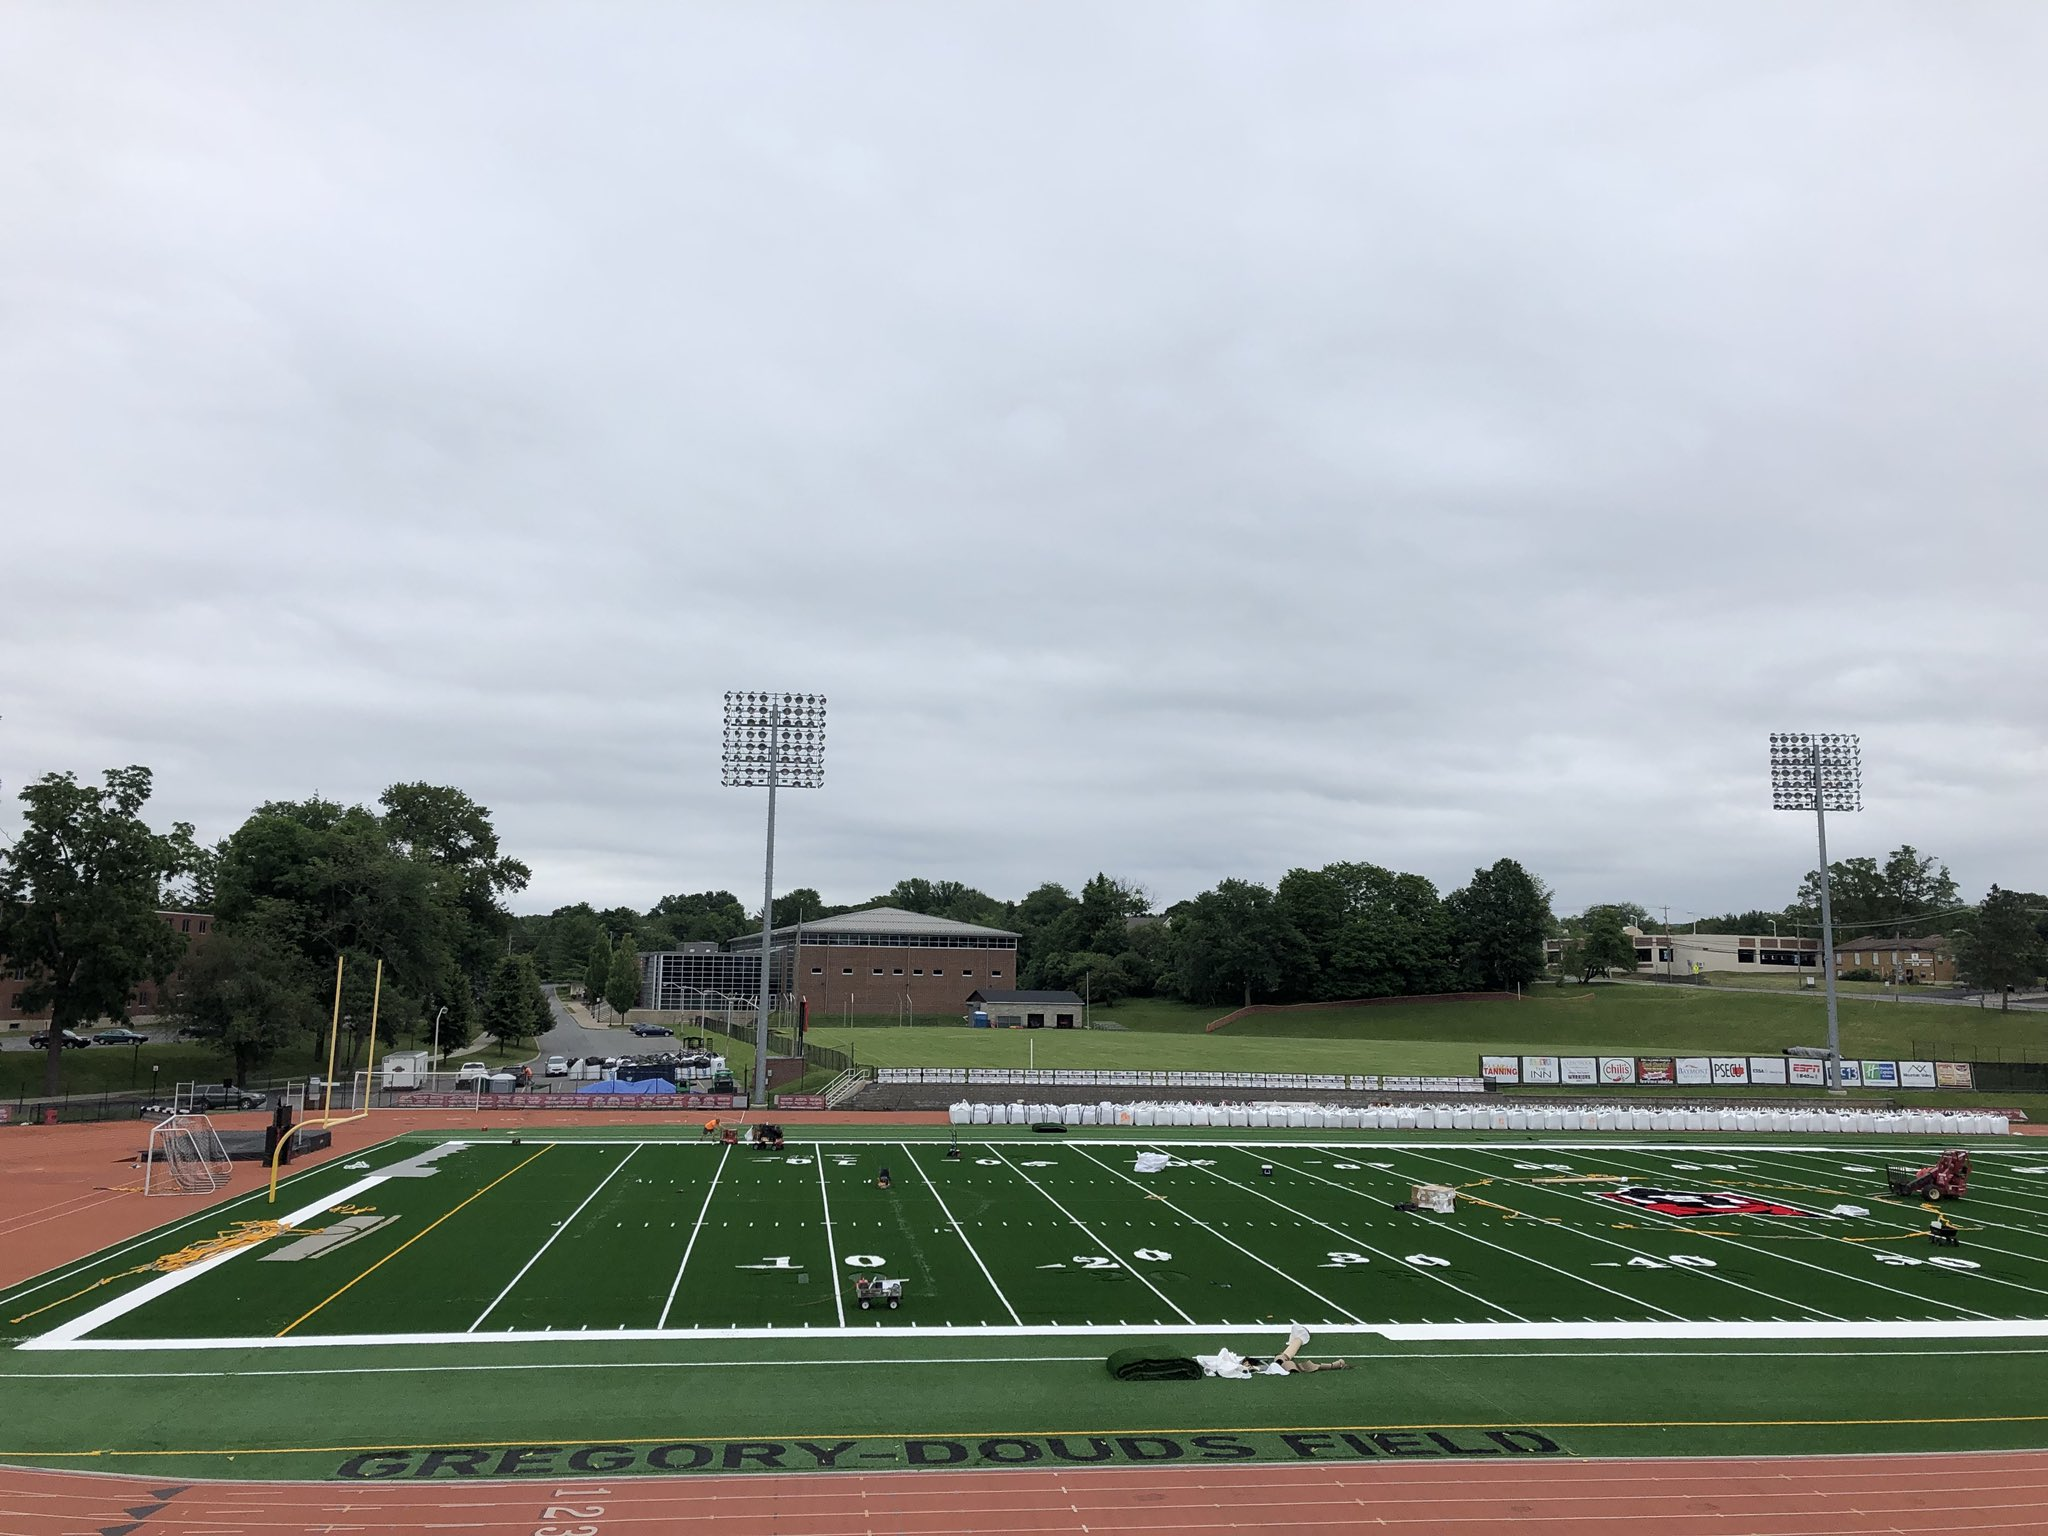 Gregory-Douds Field